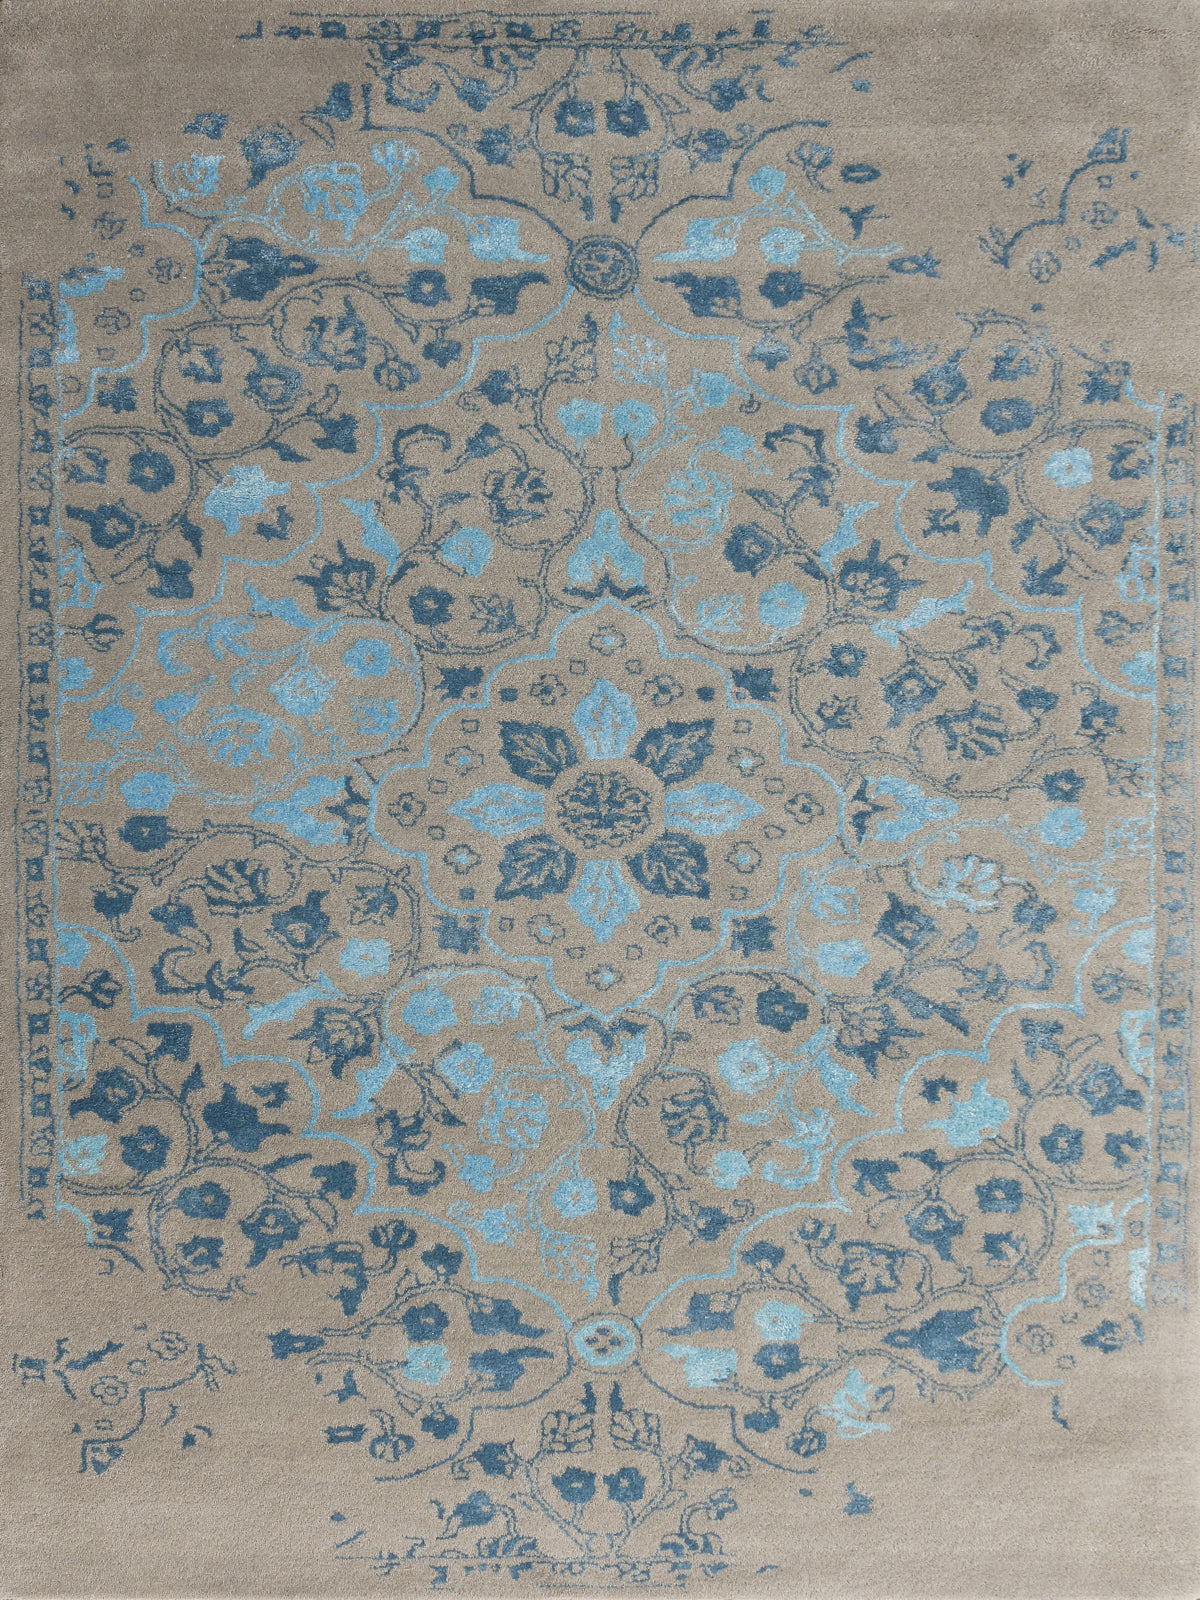 Amer Artist ART-2 Silver/Blue Area Rug main image